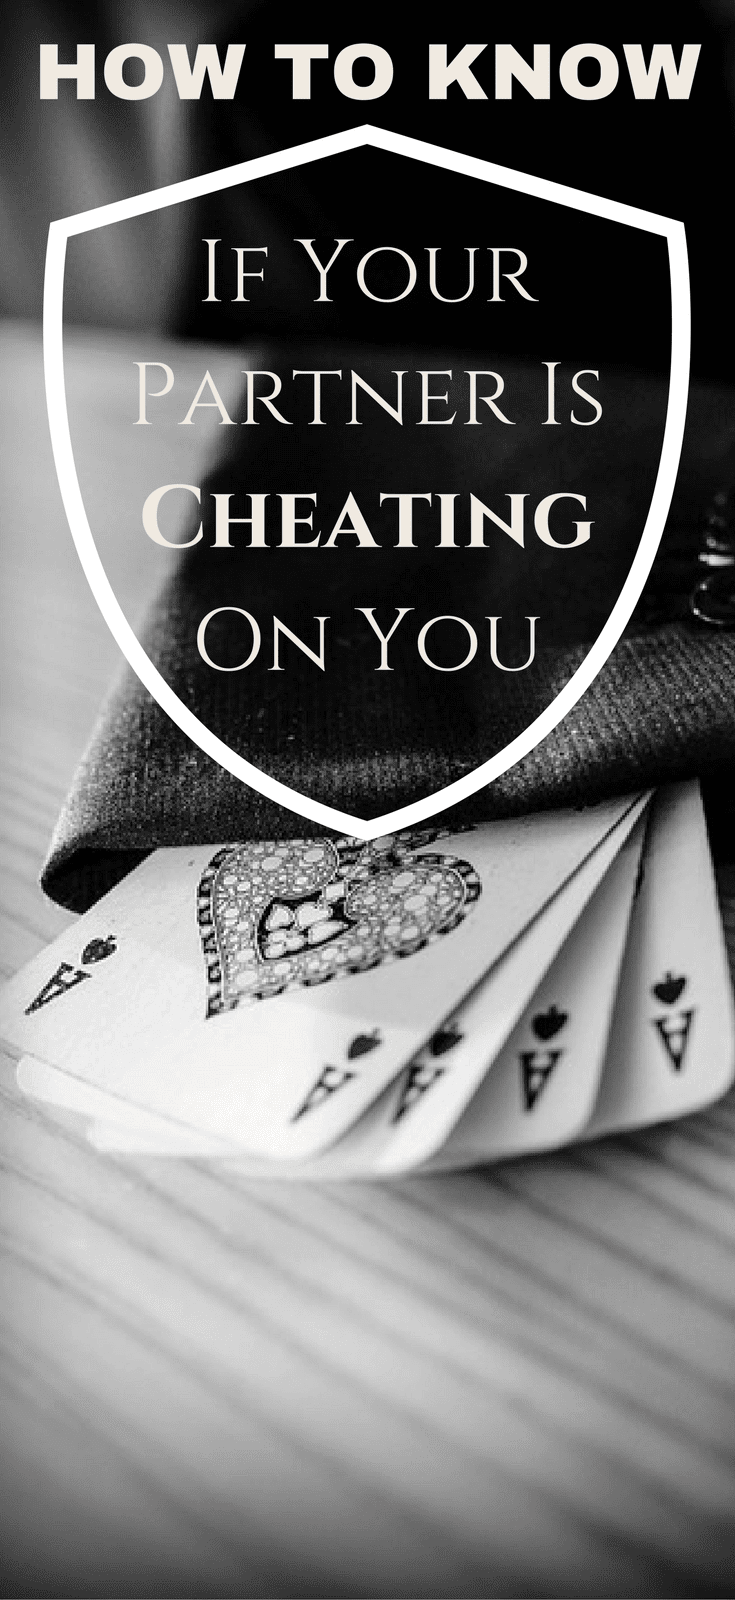 how to catch your partner cheating on you